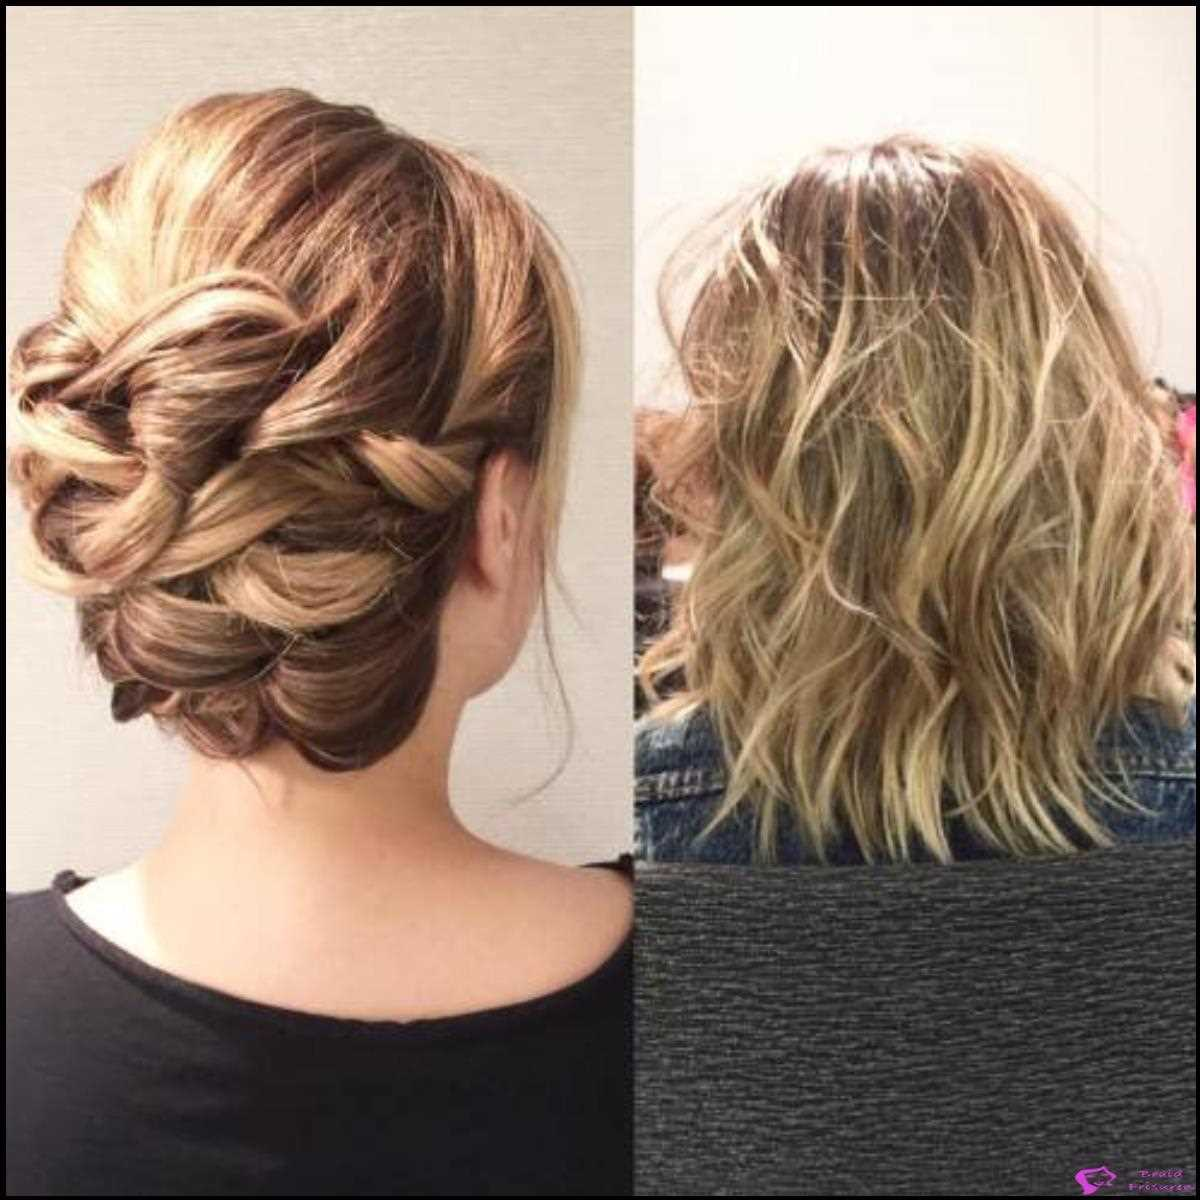 schnitte Loopy Twisted Updo